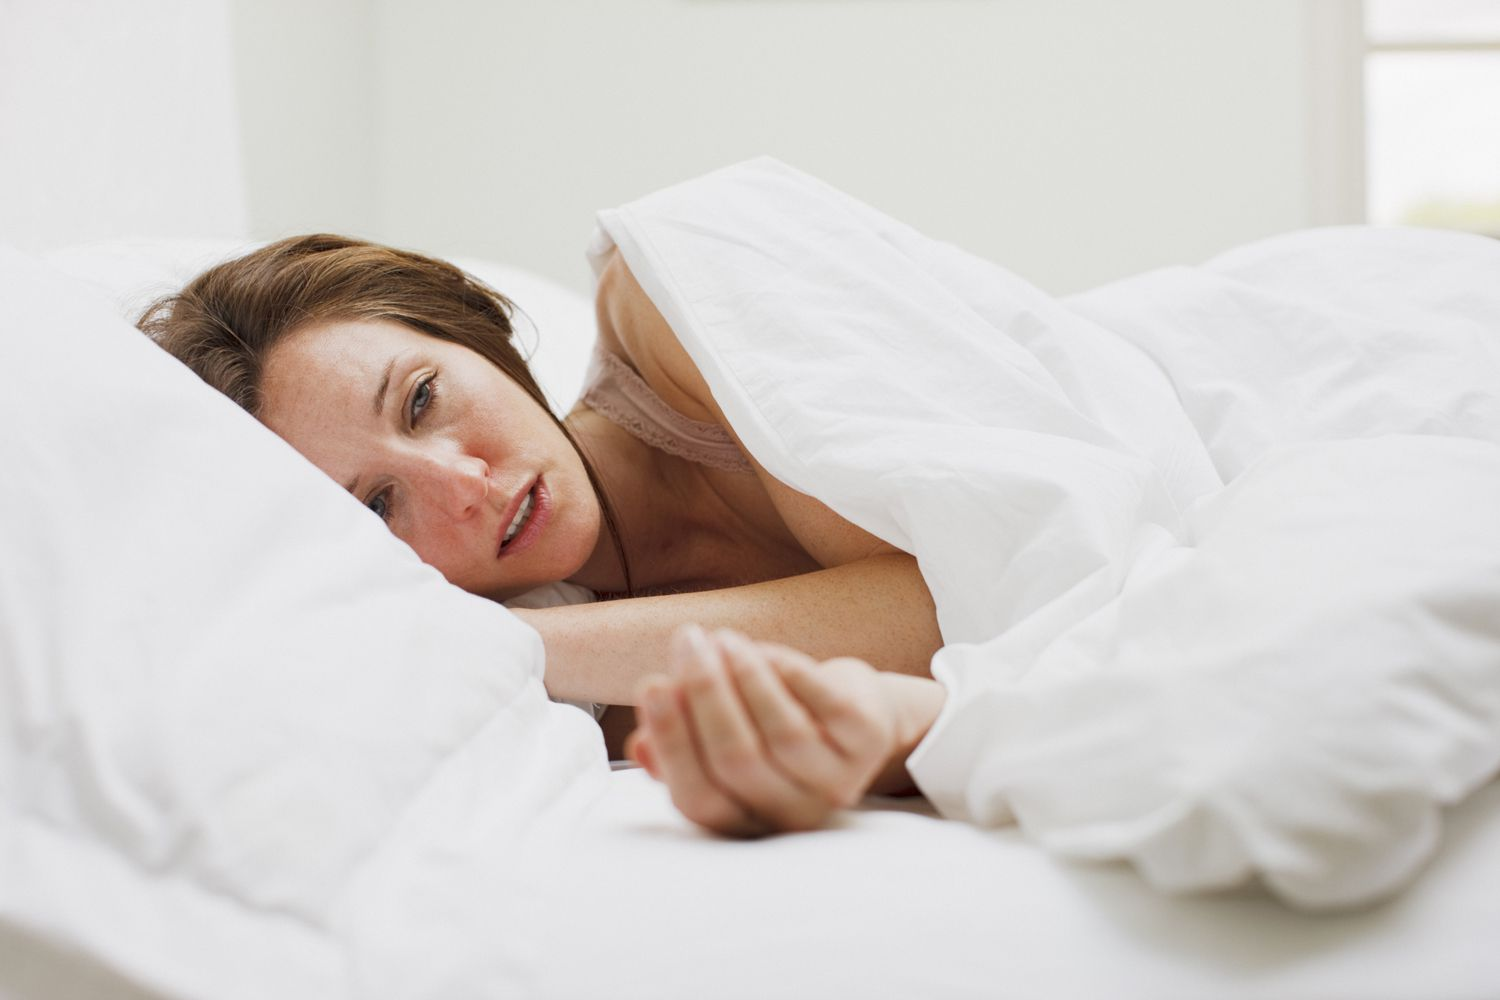 The Common Cold and Other Viral Infections